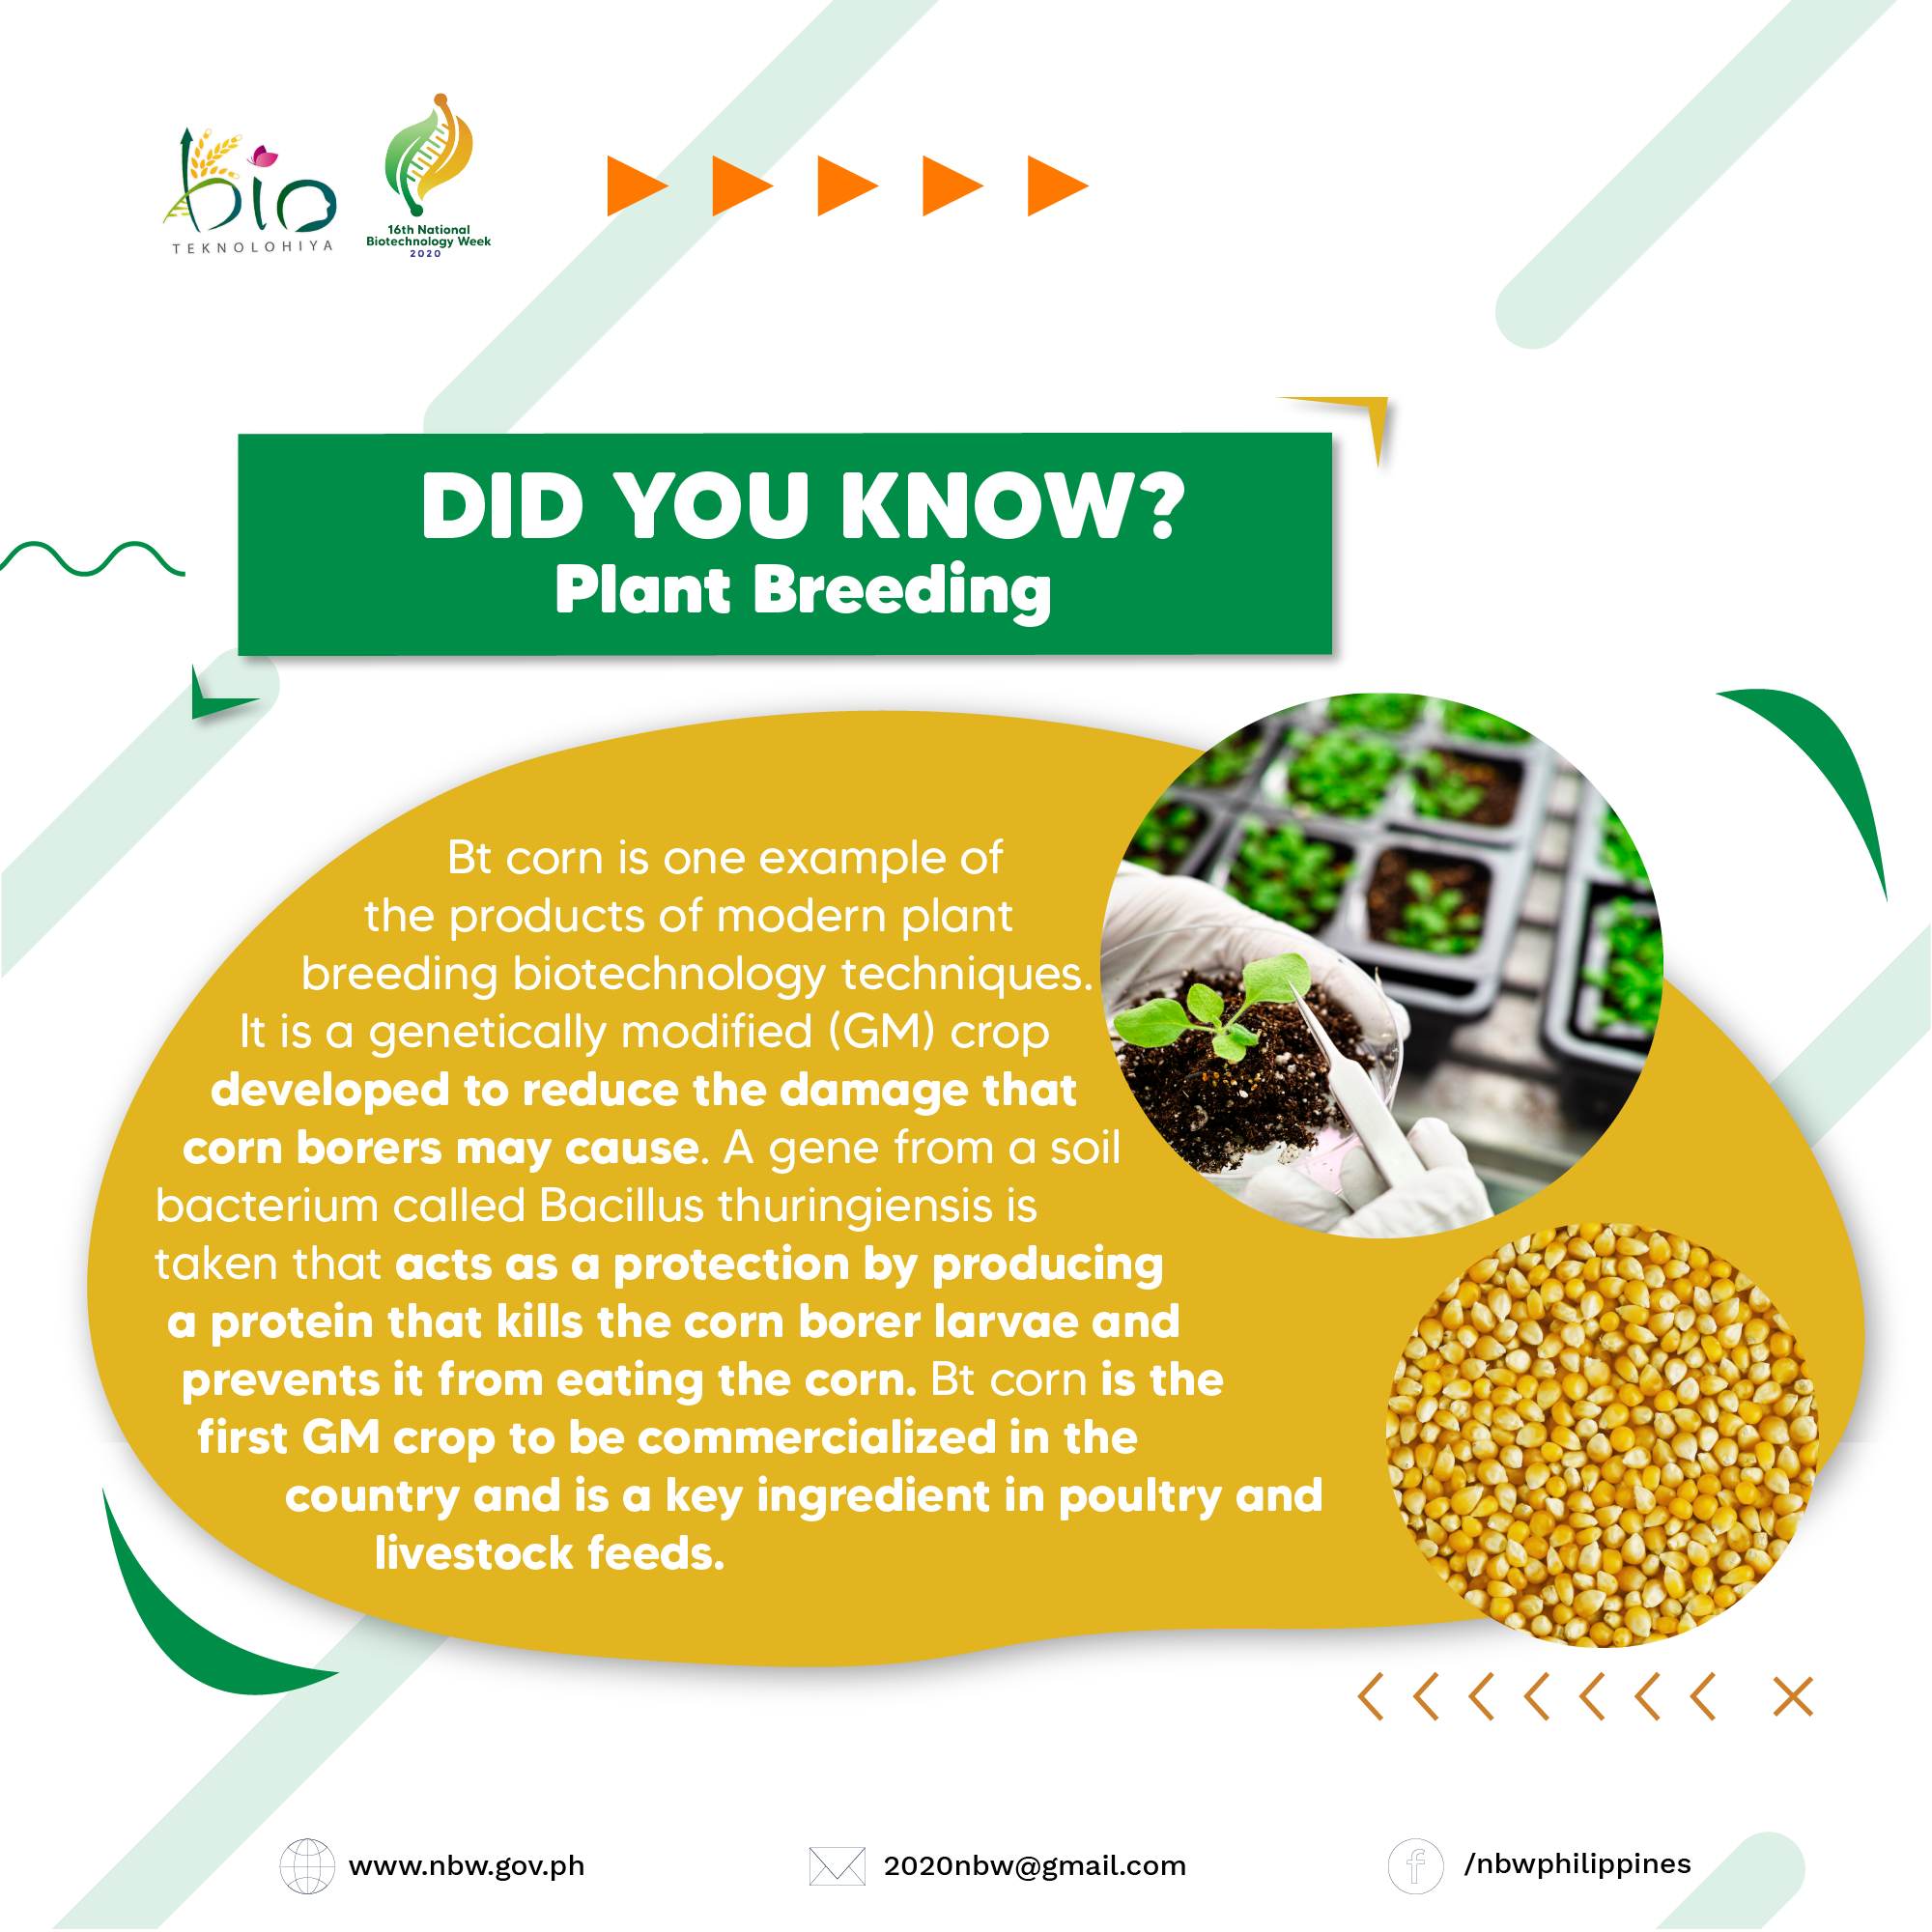 DID YOU KNOW - Plant Breeding